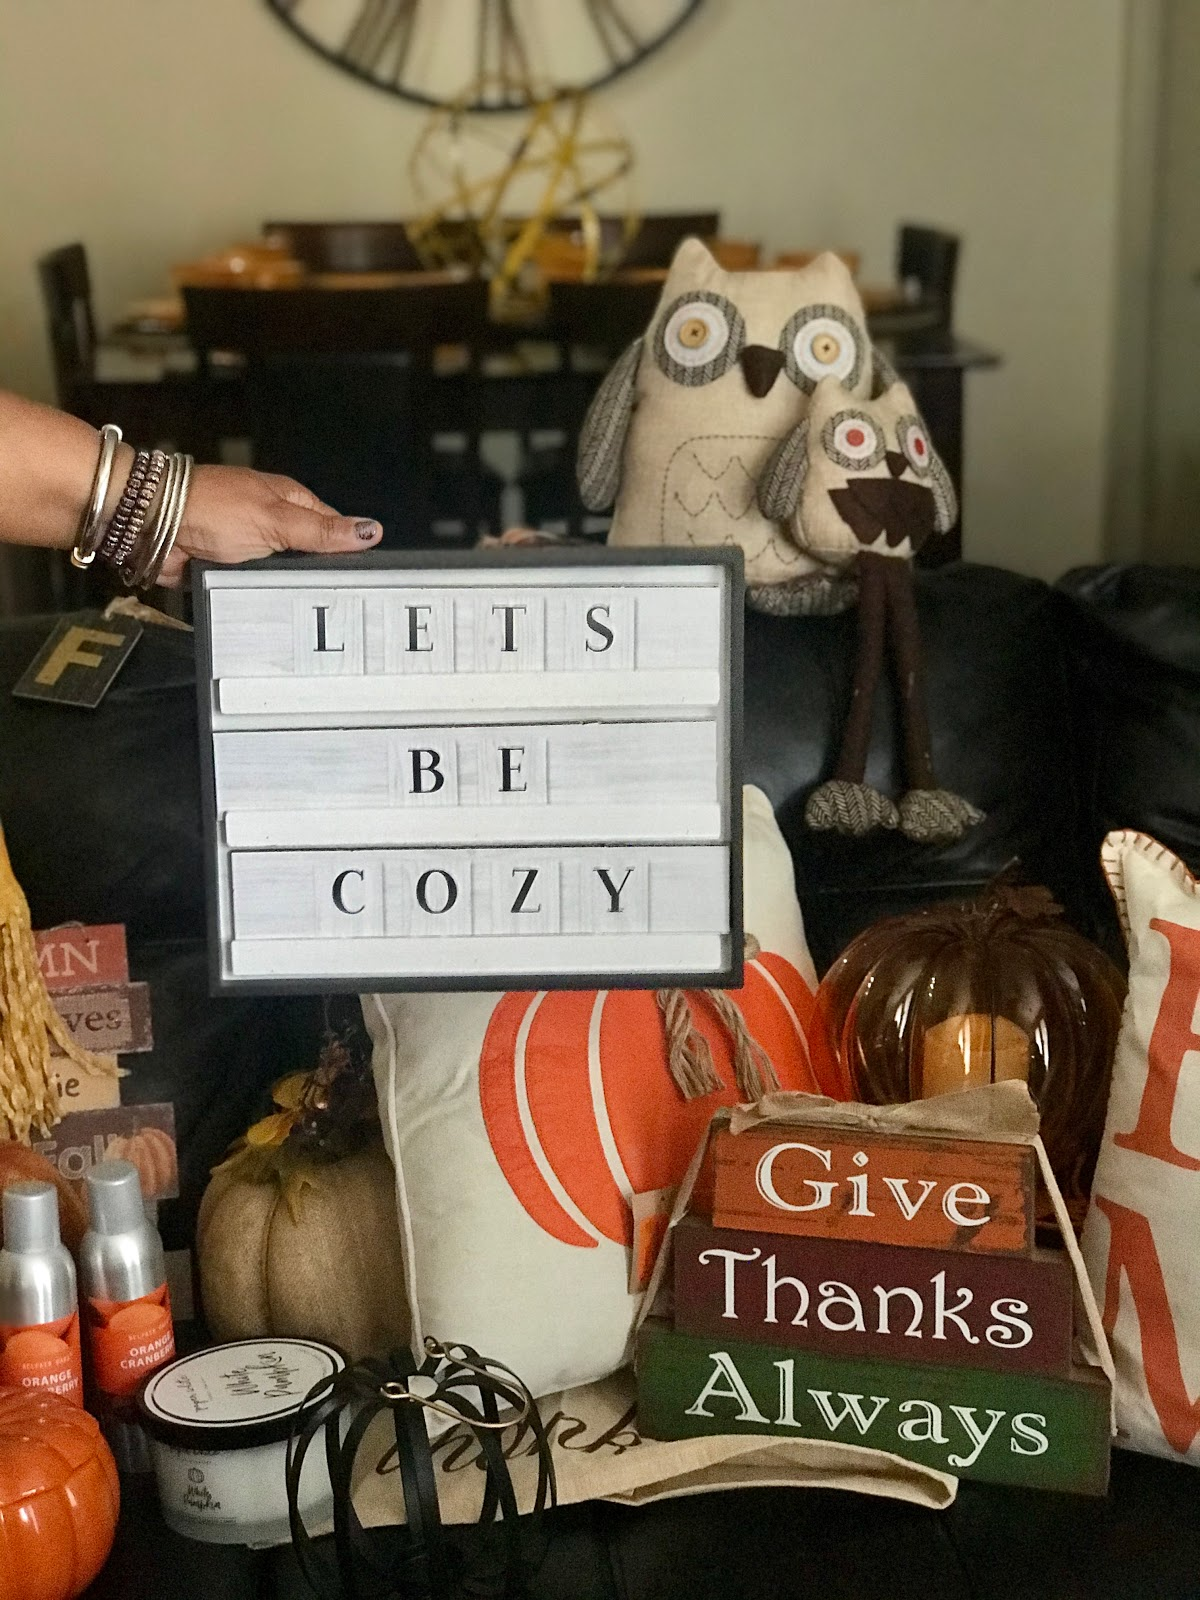 Image: Tangie Bell sharing all the Fall items she will be using to decorate for the Holiday season. Let's get cozy sign, owl pillows, pumpkin candles, room sprays, Seen first on Bits and Babbles blog. Traditions. I Guess Owl Get In A Fall Howling Mood!